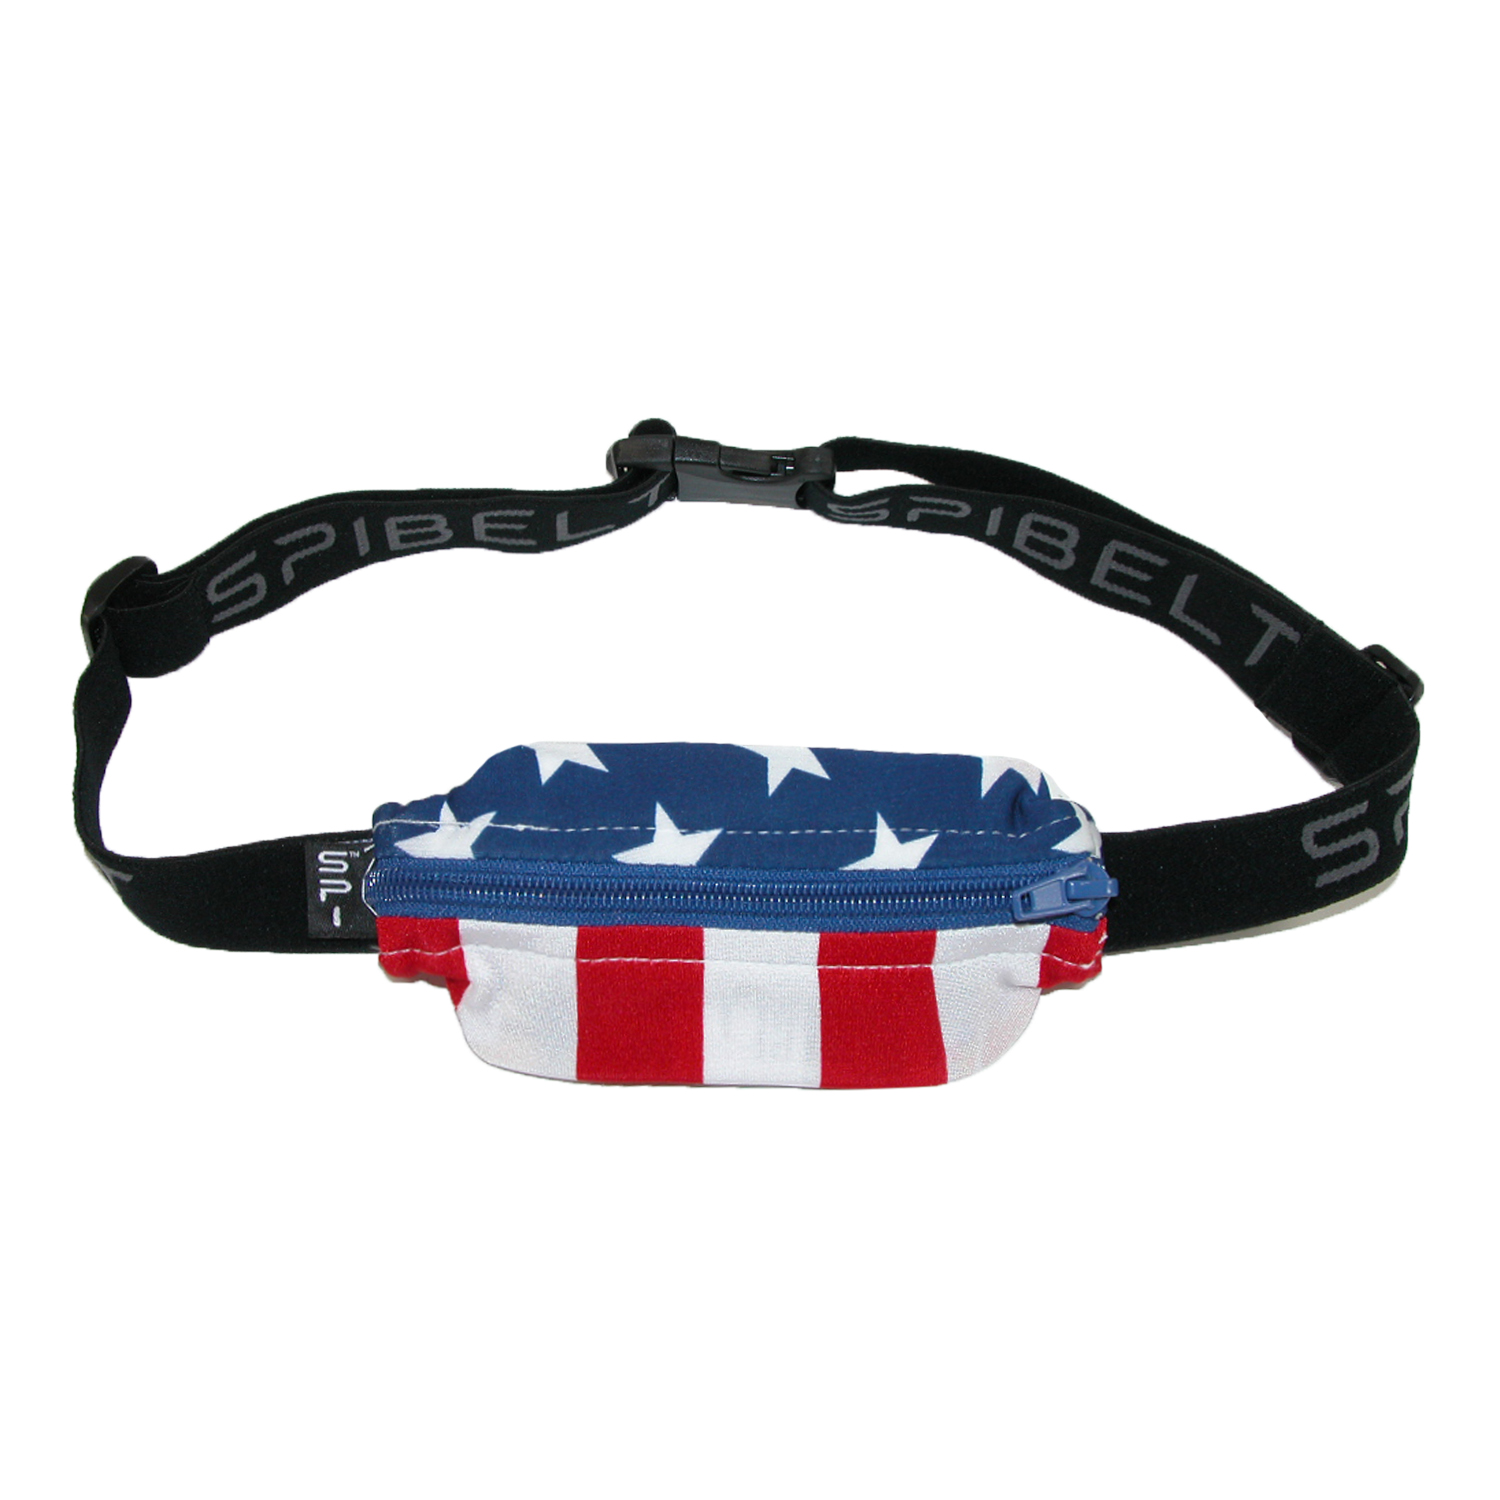 SPIbelt Size 2XL Spandex Plus Size Waist Pack with Extender, American Flag